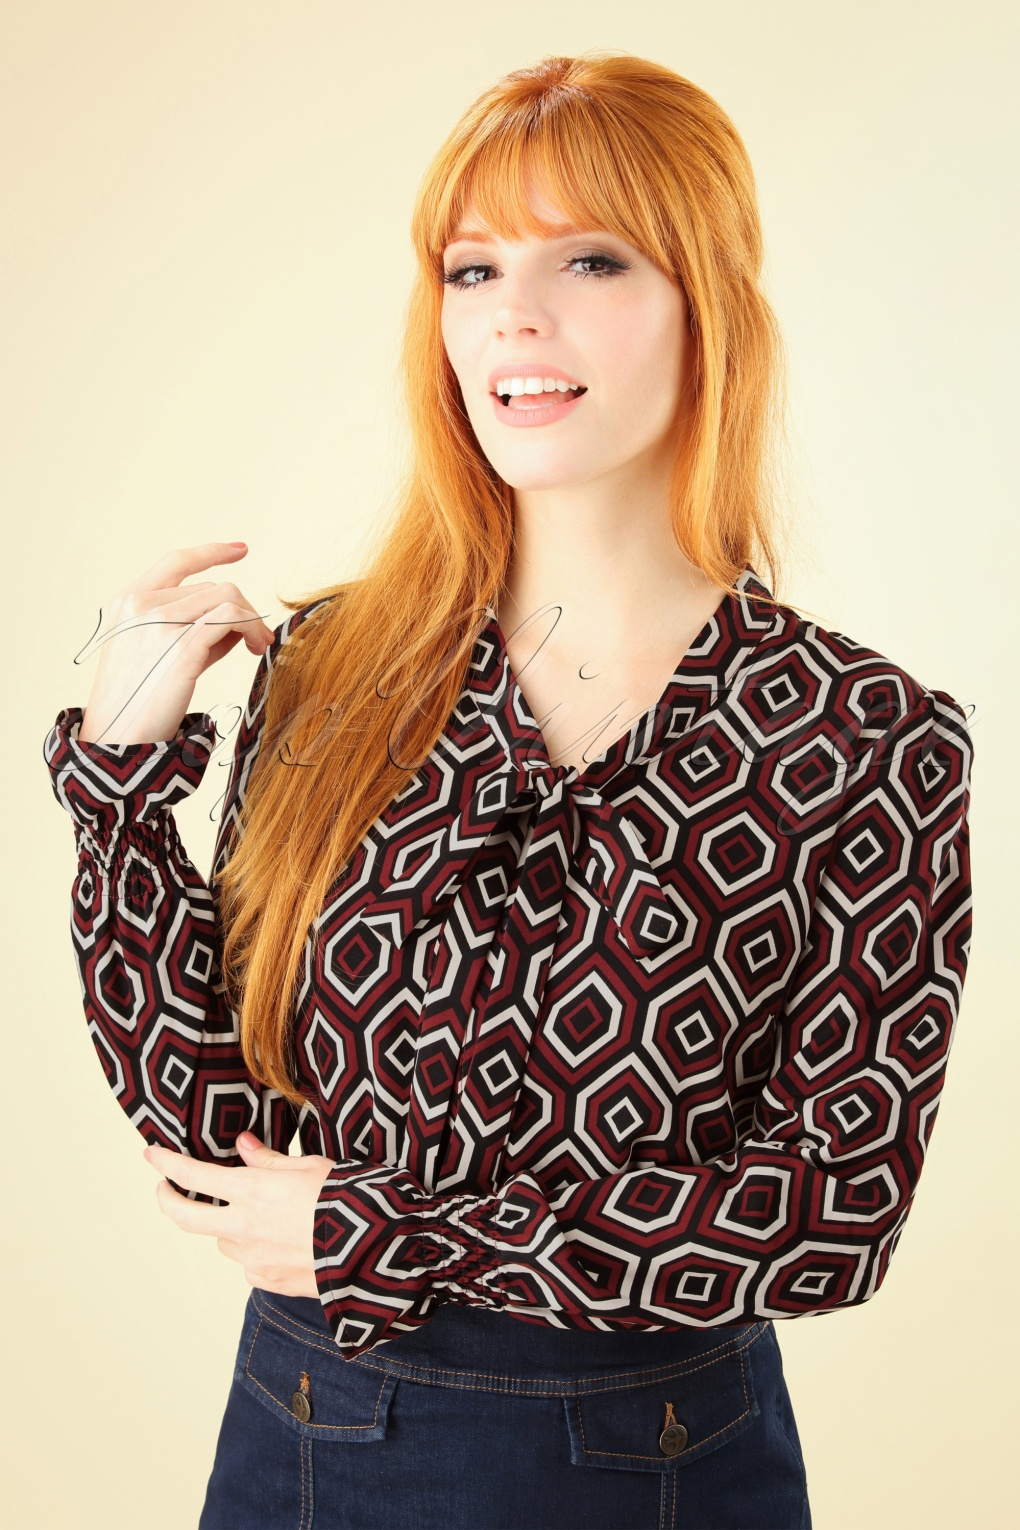 Women's 70s Shirts, Blouses, Hippie Tops 60s Retro Bow Blouse in Black and Red £63.88 AT vintagedancer.com